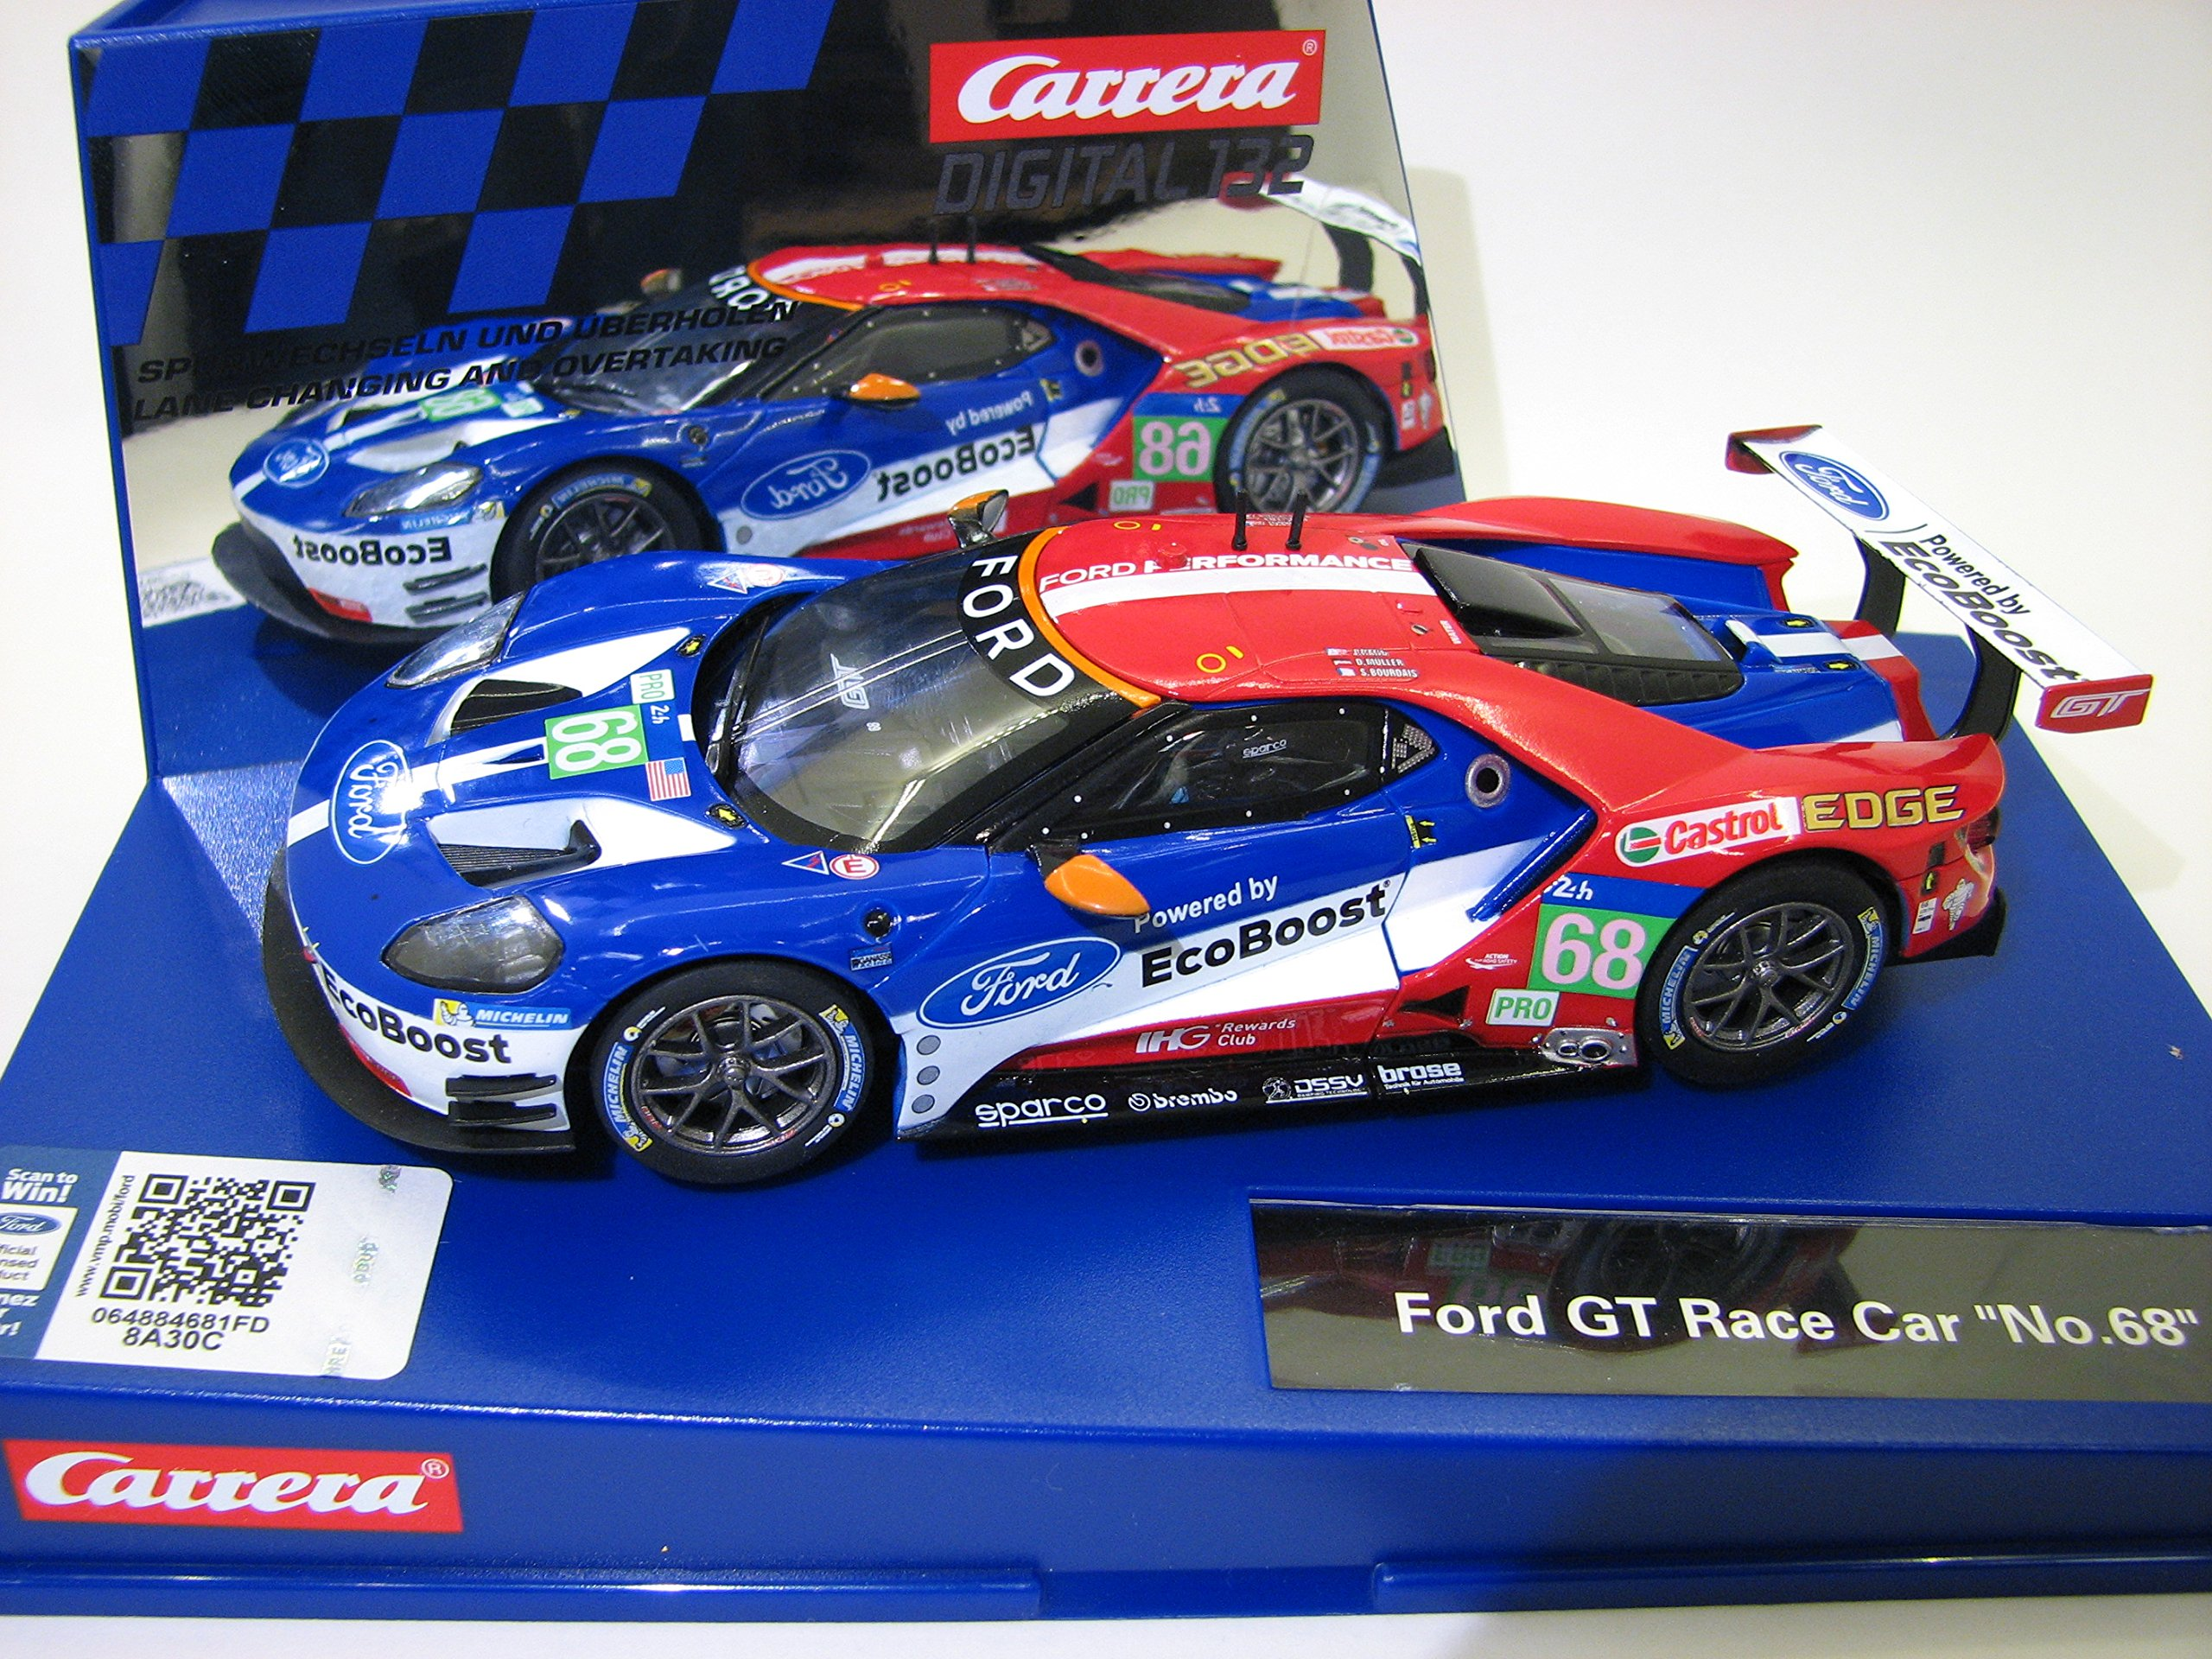 Carrera 30771 Digital 132 Slot Car Racing Vehicle - Ford GT Race Car No. 68 - (1:32 Scale) by Carrera (Image #1)